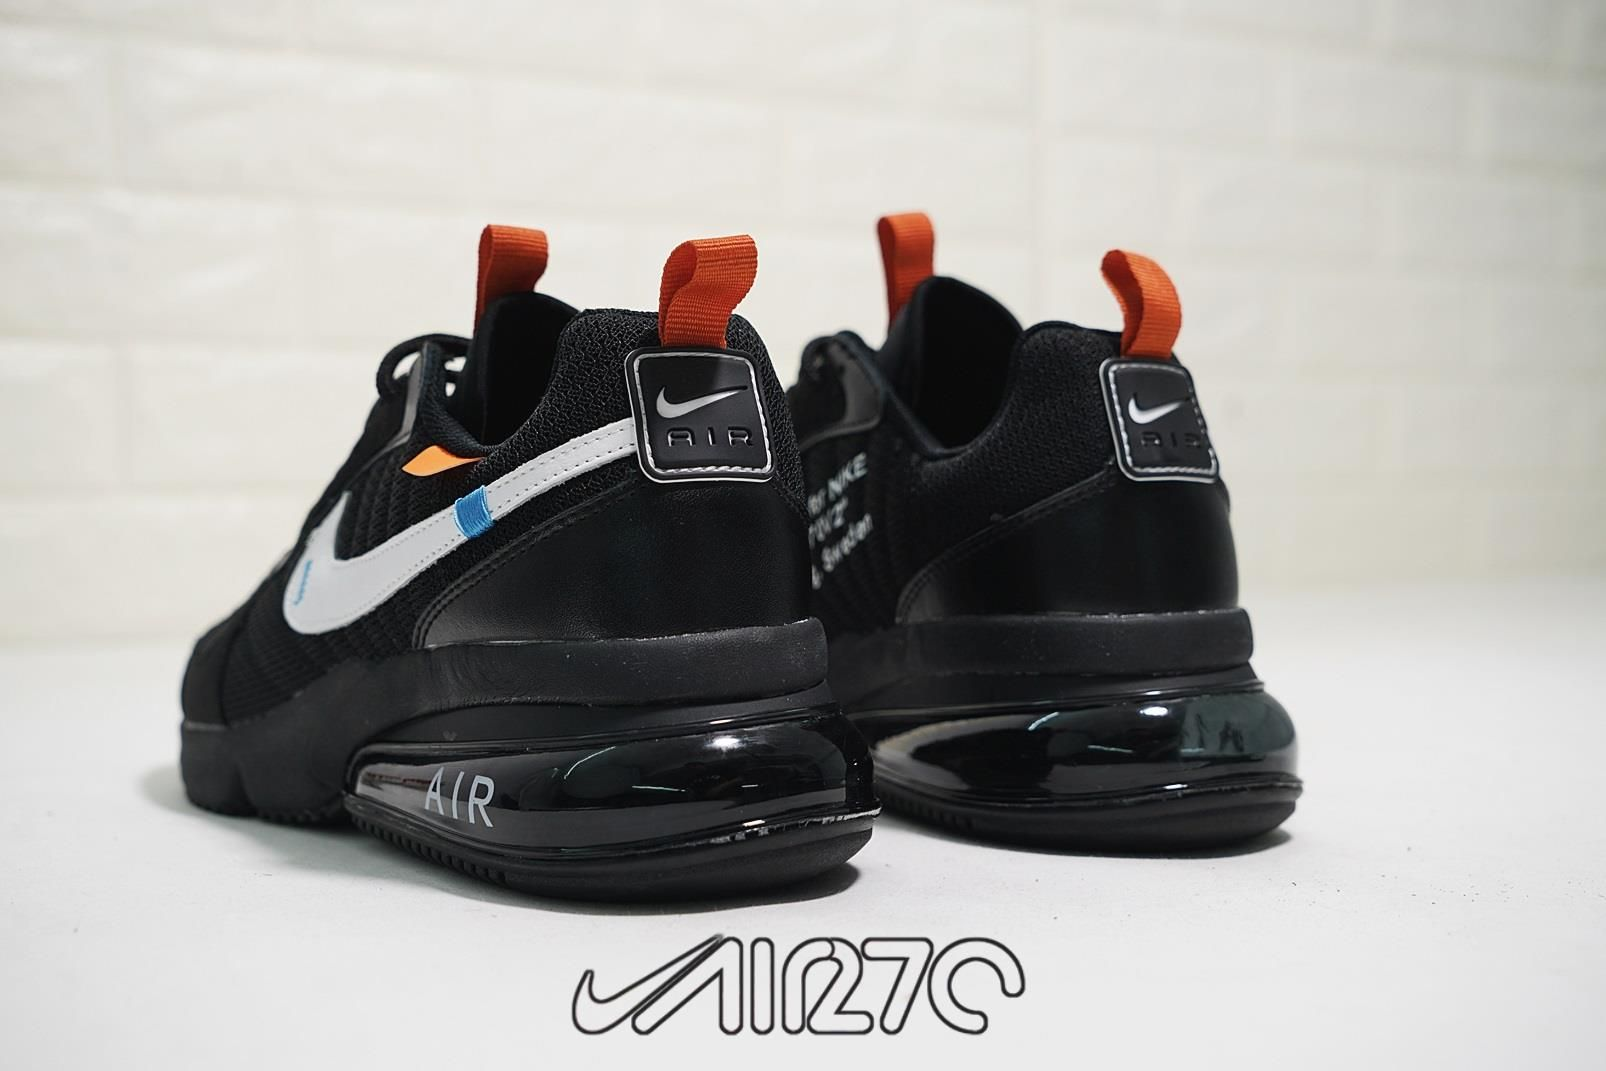 the best attitude 859f3 bb1e7 Off-White x Nike Air Max 270 Futura Black-White Orange 2018